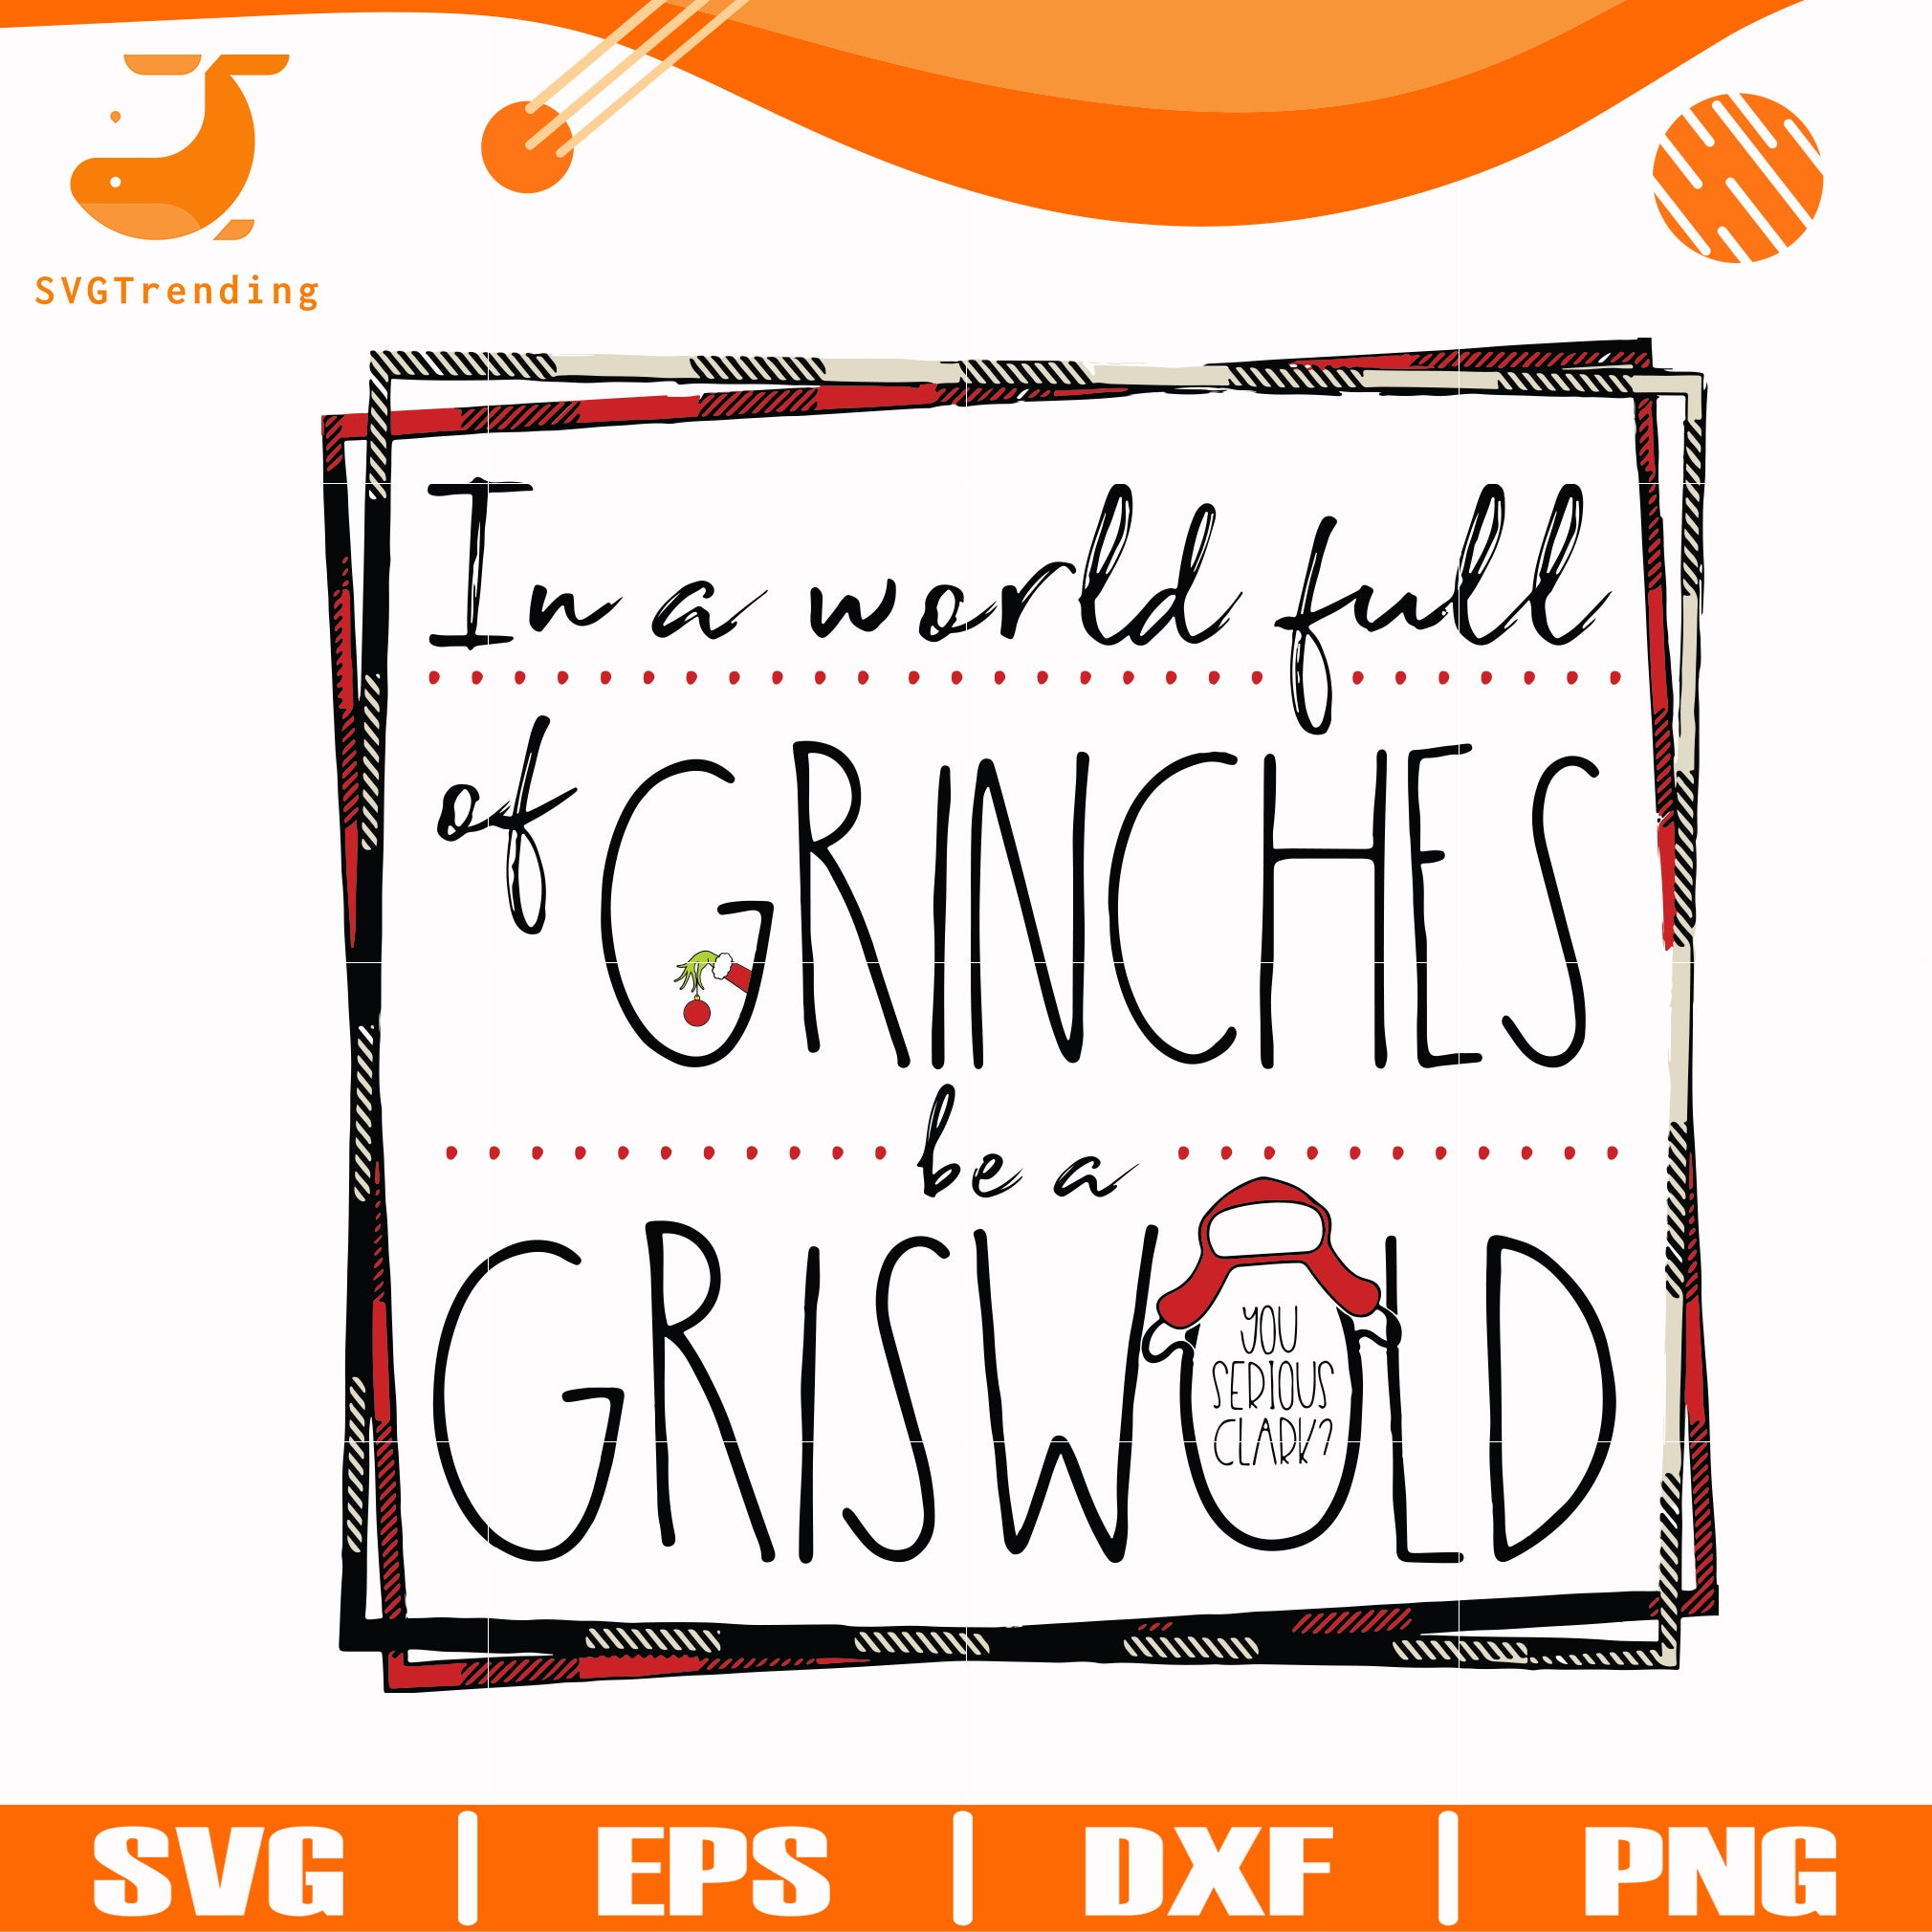 In a world full of grinches be a griswold svg, png, dxf, eps digital file NCRM0137